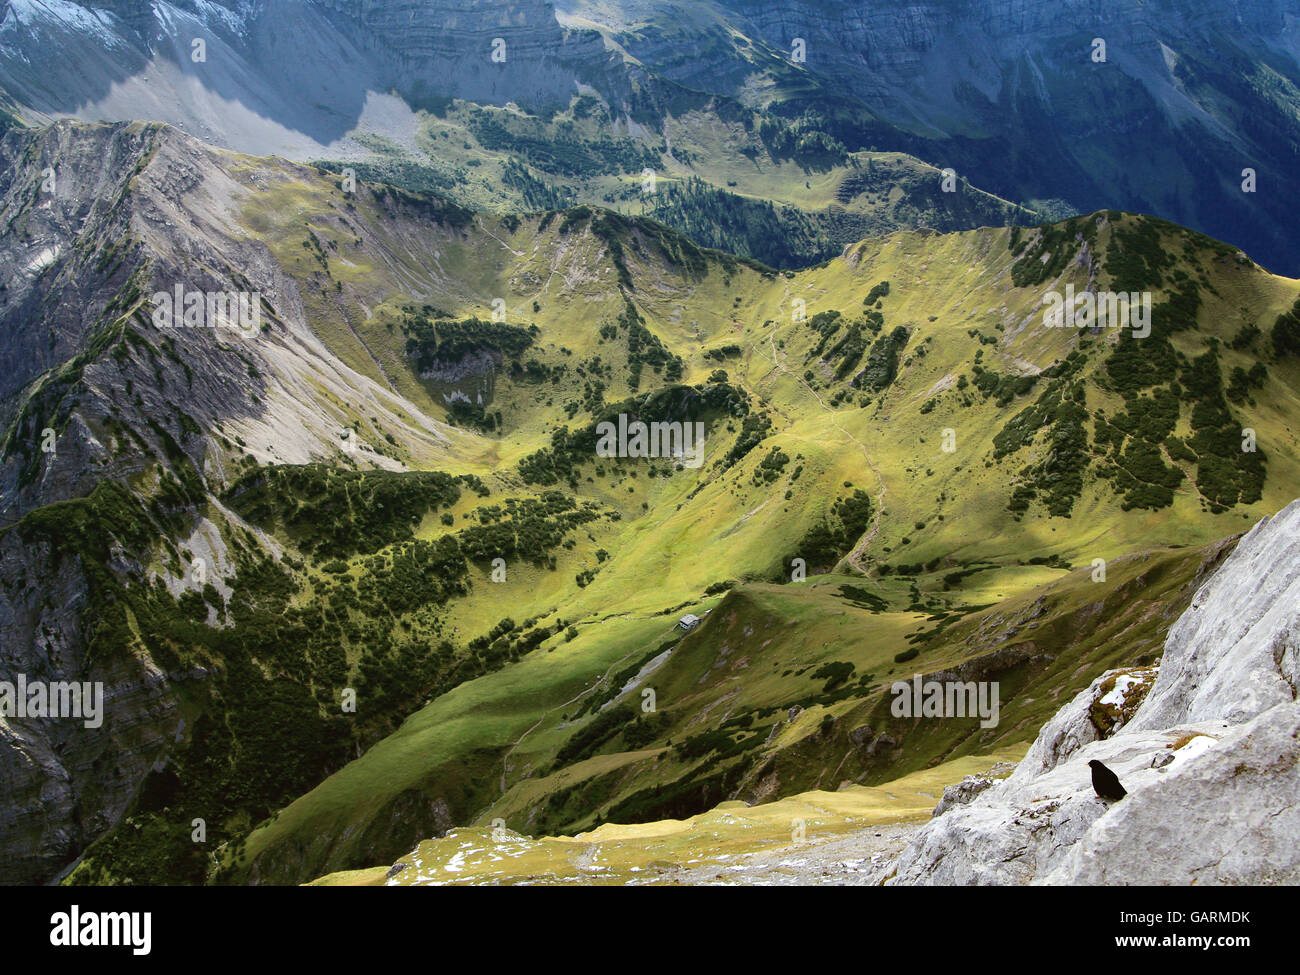 view on a green alp in the karwendel mountains in the alps - Stock Image